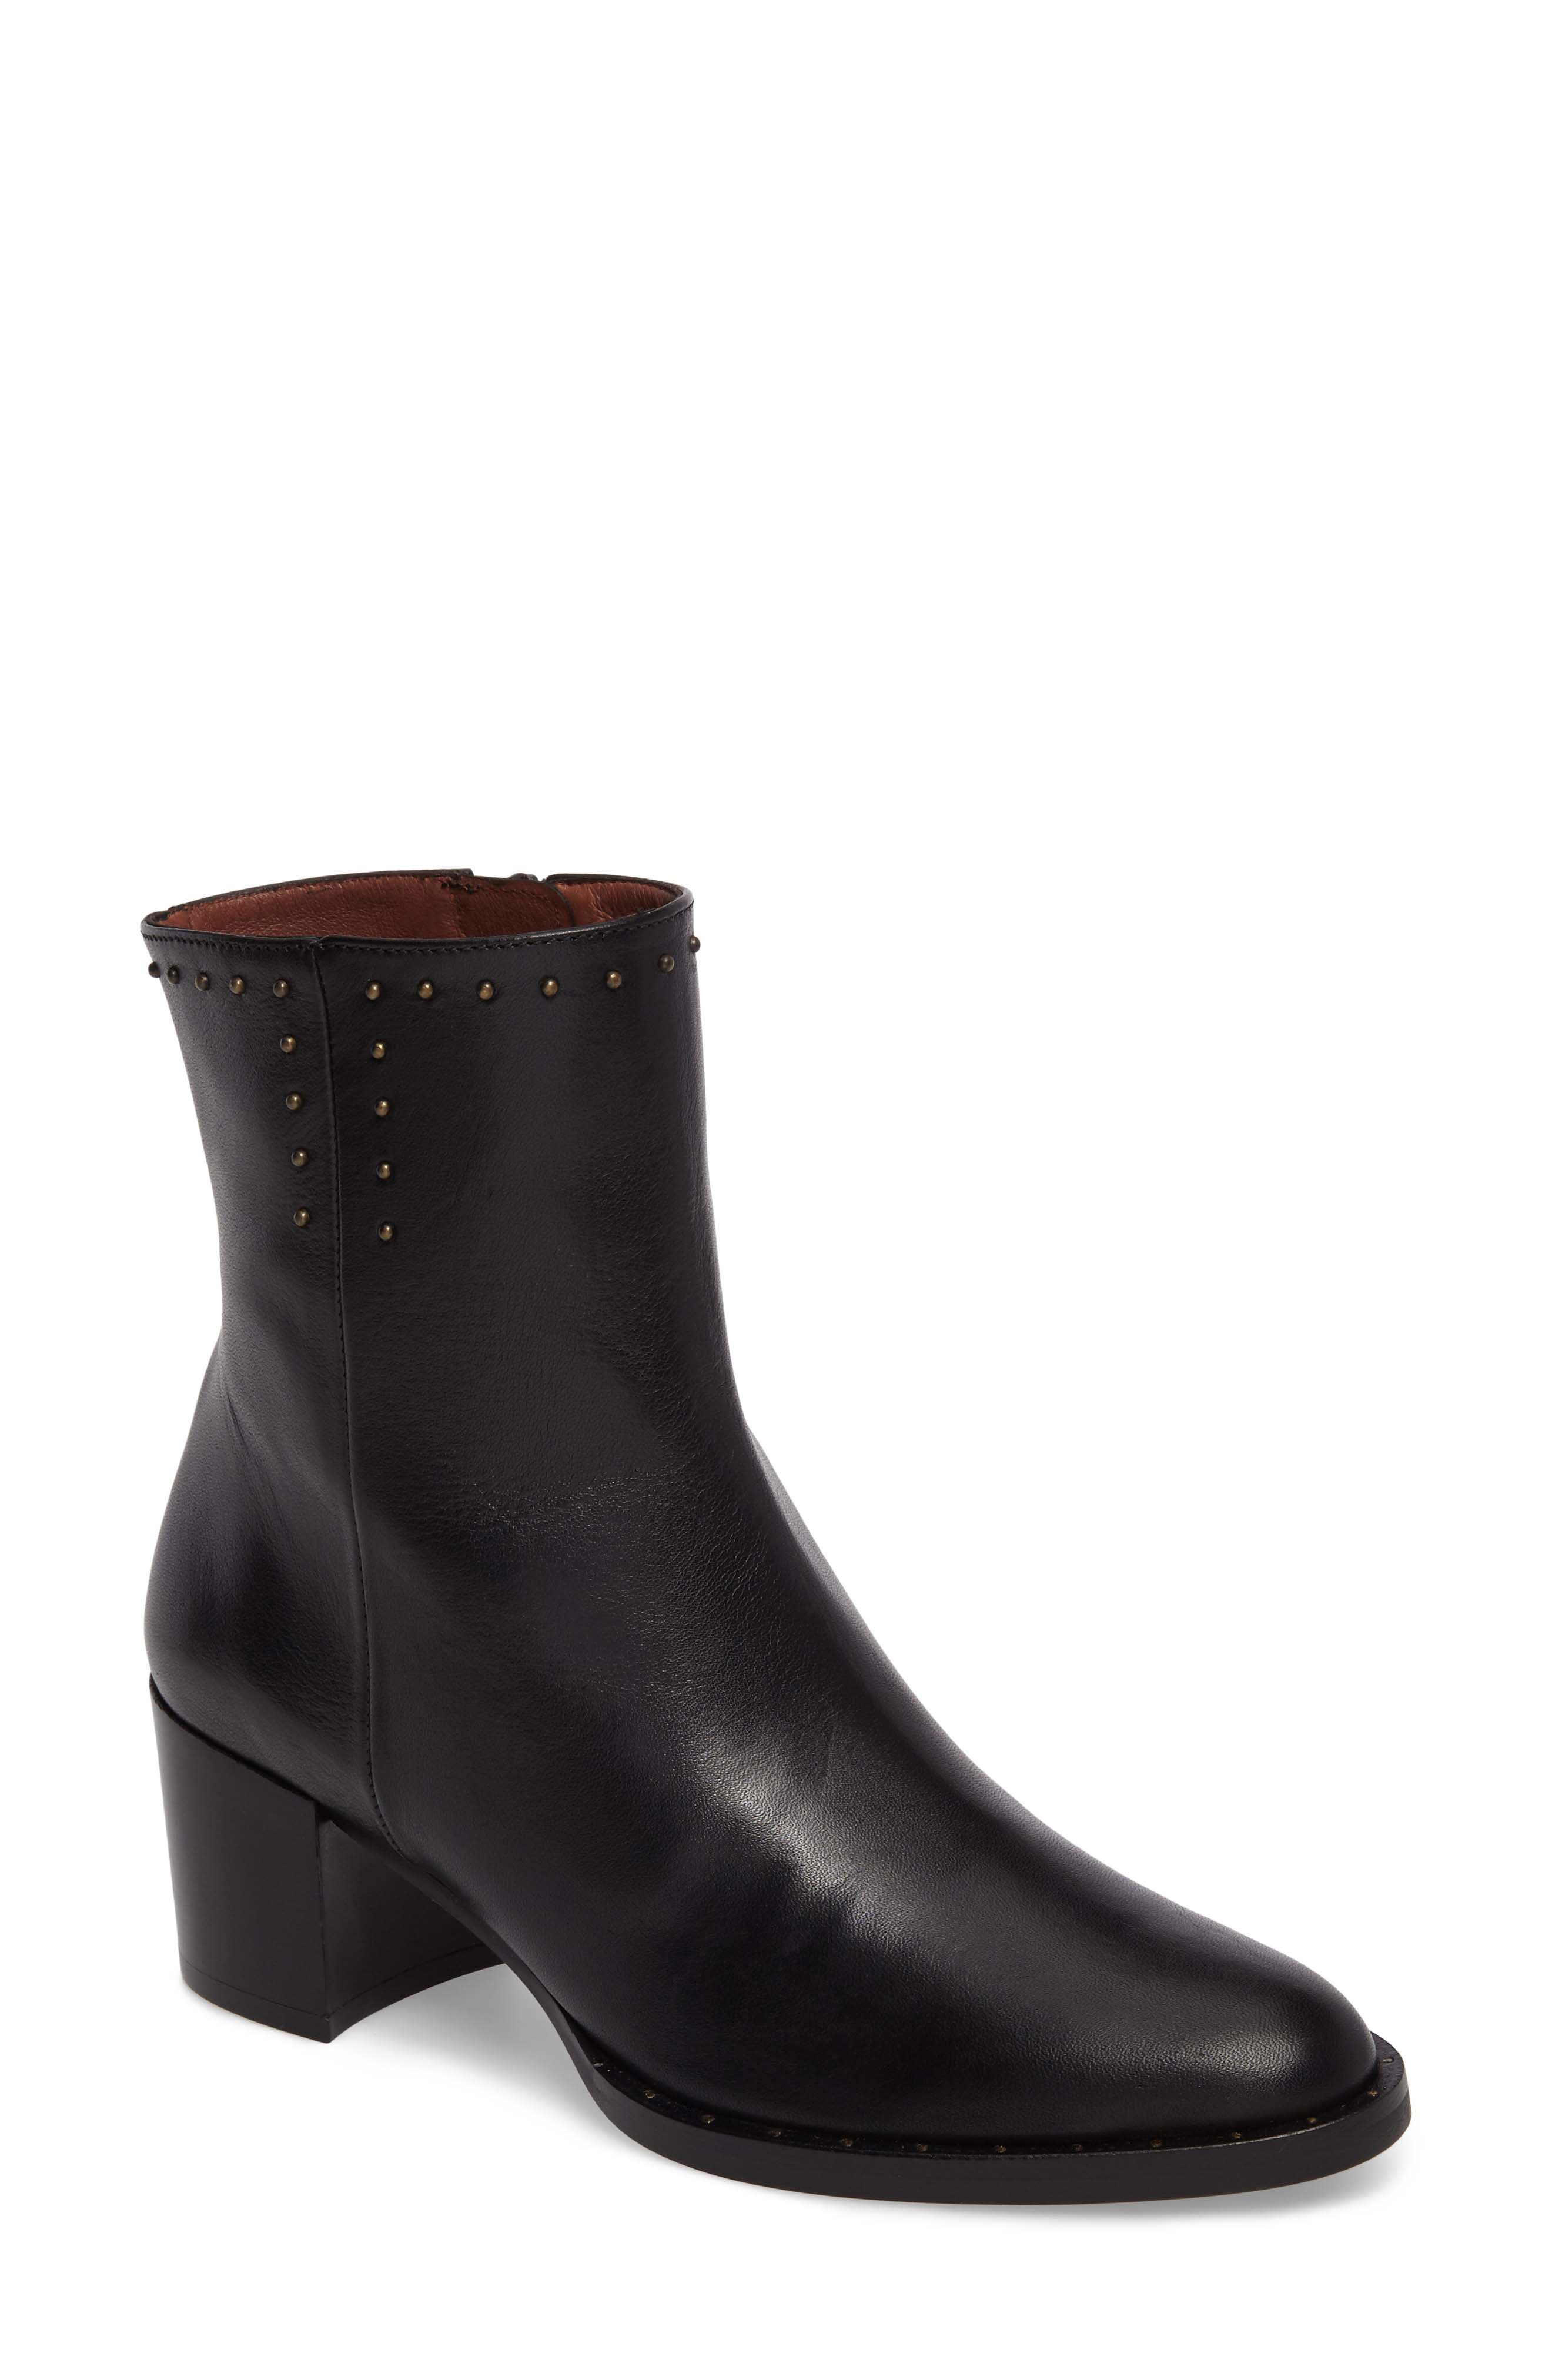 Dawn Bootie,                         Main,                         color, SOHO BLACK LEATHER